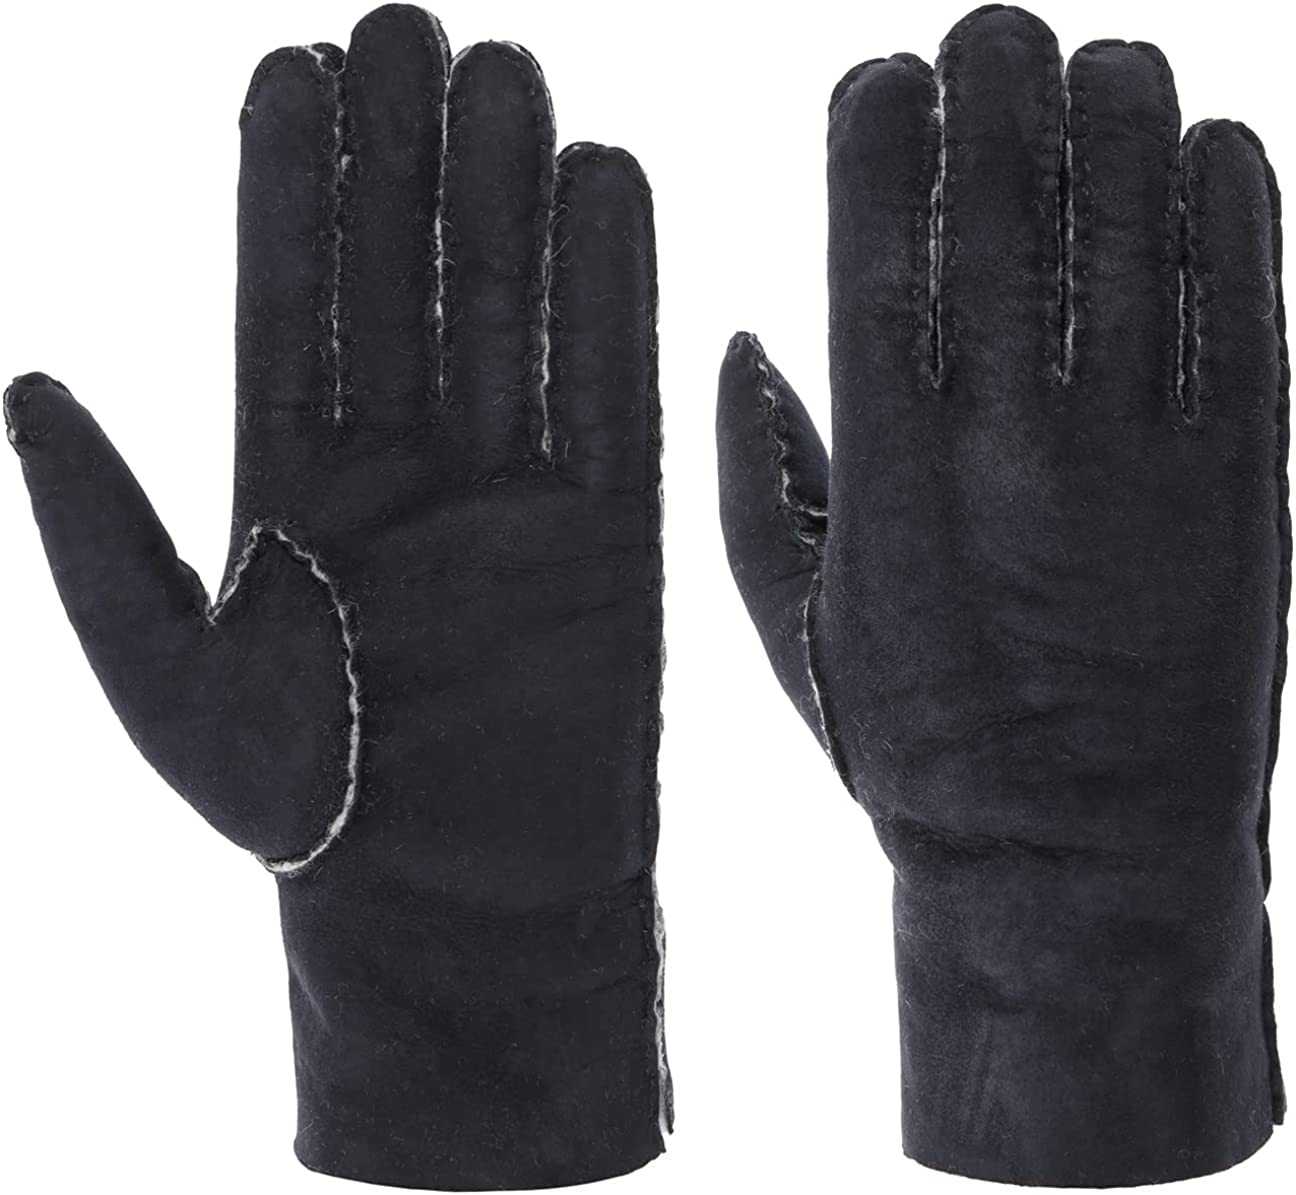 Caridei Contrast Lining Women´s Gloves Women - Made in Italy